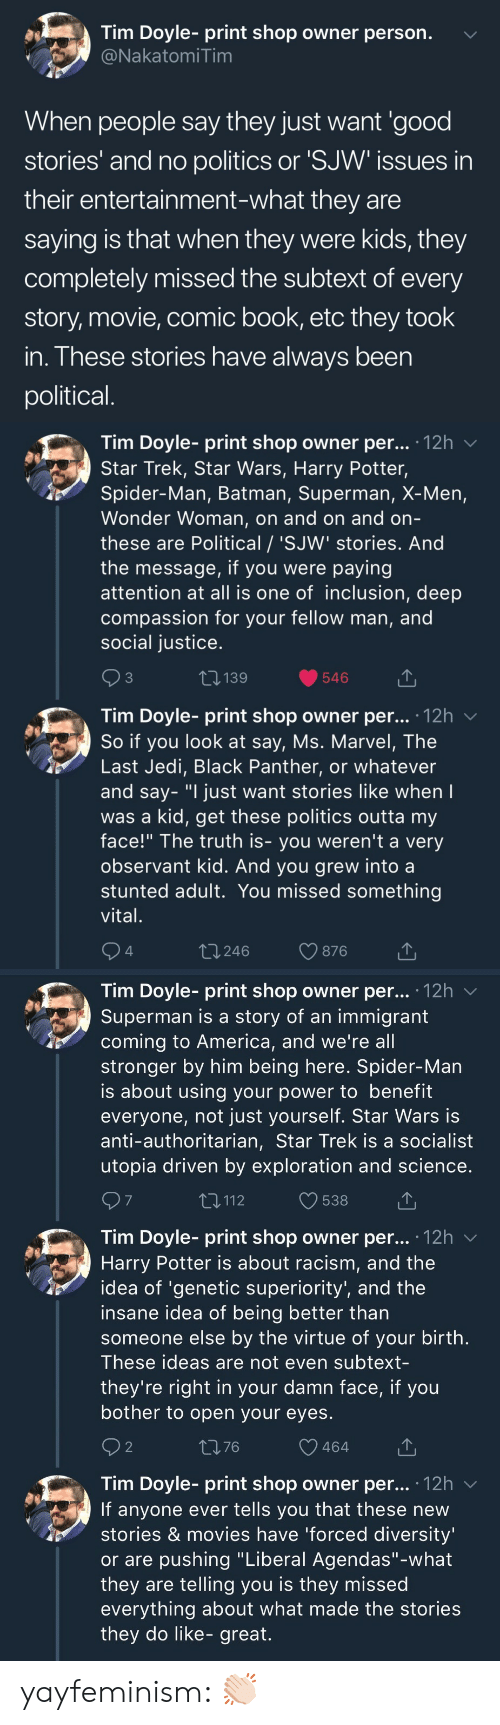 """observant: Tim Doyle- print shop owner person.  NakatomiTim  When people say they just want 'good  stories' and no politics or 'SJW issues in  their entertainment-what they are  saying is that when they were kids, they  completely missed the subtext of every  story, movie, comic book, etc they took  in. These stories have always been  political   Tim Doyle- print shop owner per... 12h v  Star Trek, Star Wars, Harry Potter,  Spider-Man, Batman, Superman, X-Men,  Wonder Woman, on and on and orn  these are Political / 'SJW' stories. And  the message, if you were paying  attention at all is one of inclusion, deep  compassion for your fellow man, and  social justice  3  139  546  Tim Dovle-print shop owner per... 12h  So if you look at say, Ms. Marvel, The  Last Jedi, Black Panther, or whatever  and say- """"I just want stories like when  was a kid, get these politics outta my  face!"""" The truth is- you weren't a very  observant kid. And you grew into a  stunted adult. You missed something  vital  4  t 246  876   Tim Doyle- print shop owner per... '12h v  Superman is a story of an immigrant  coming to America, and we're all  stronger by him being here. Spider-Man  is about using your power to benefit  everyone, not just yourself. Star Wars is  anti-authoritarian, Star Trek is a socialist  utopia driven by exploration and science  7  T,112  538  Tim Doyle- print shop owner per... .12h  Harry Potter is about racism, and the  idea of 'genetic superiority', and the  insane idea of being better than  someone else by the virtue of your birth  These ideas are not even subtext-  they're right in your damn face, if you  bother to open your eyes  2  1376  464  Tim Doyle- print shop owner per... 12h v  If anyone ever tells you that these new  stories & movies have 'forced diversity  or are pushing """"Liberal Agendas""""-what  they are telling you is they missed  everything about what made the stories  they do like- great. yayfeminism: 👏🏻"""